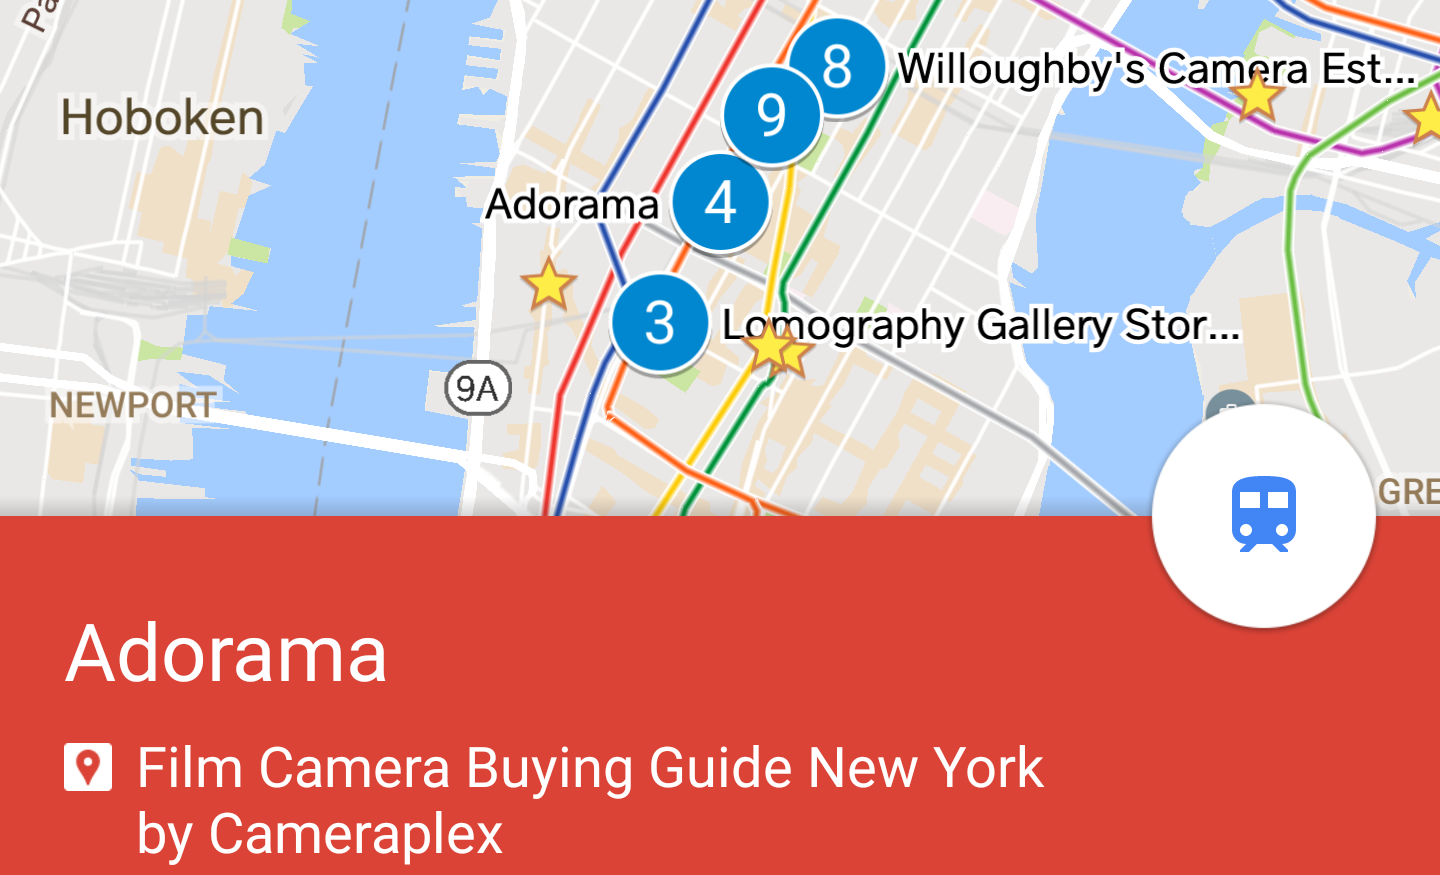 Film Camera Buying Guide Map